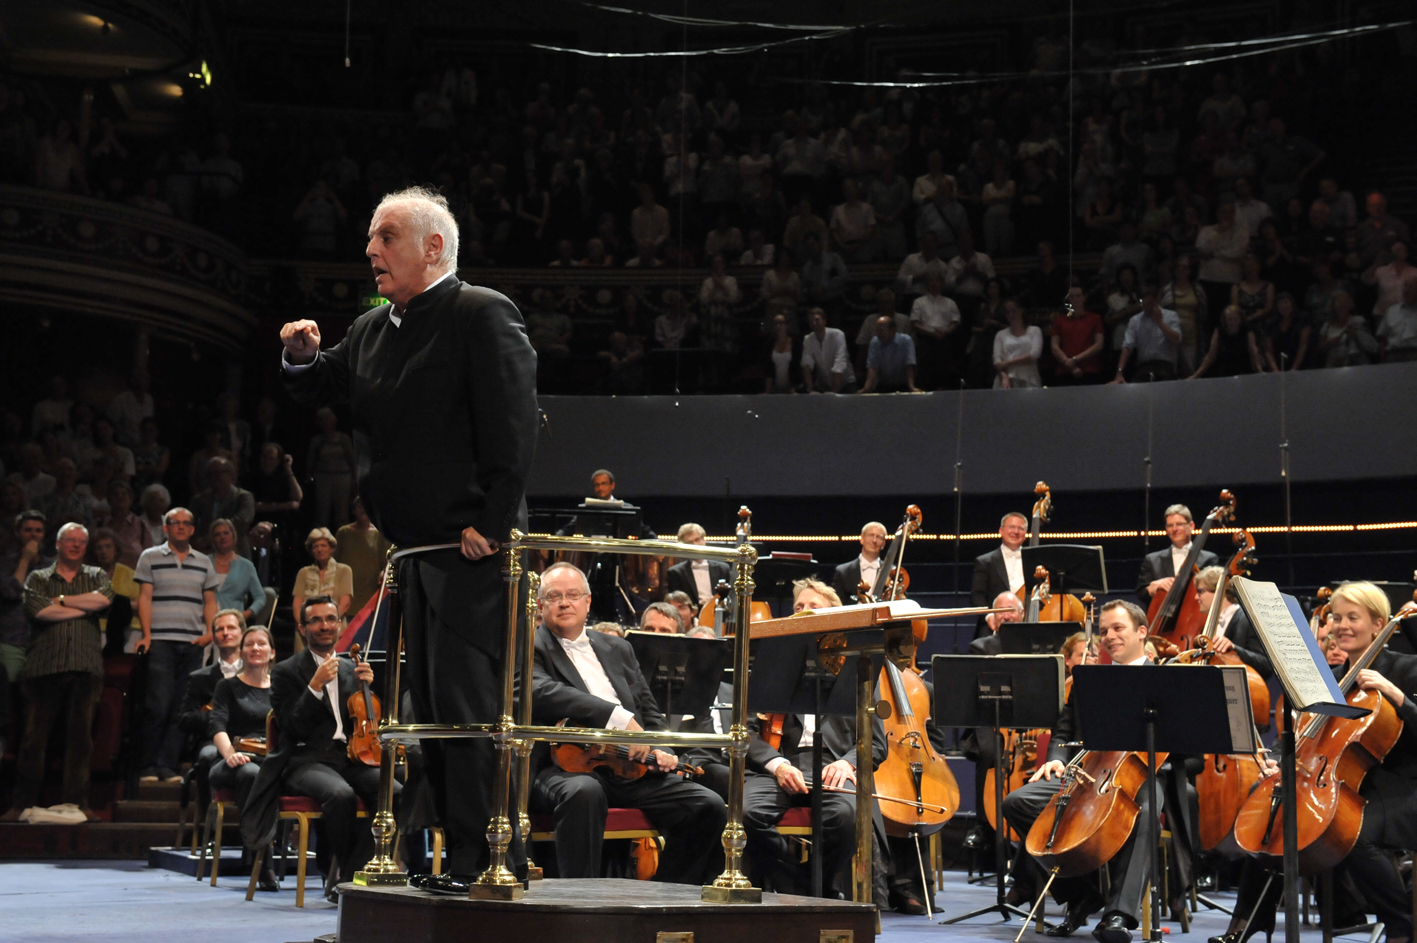 Daniel Barenboim addressing the Proms audience